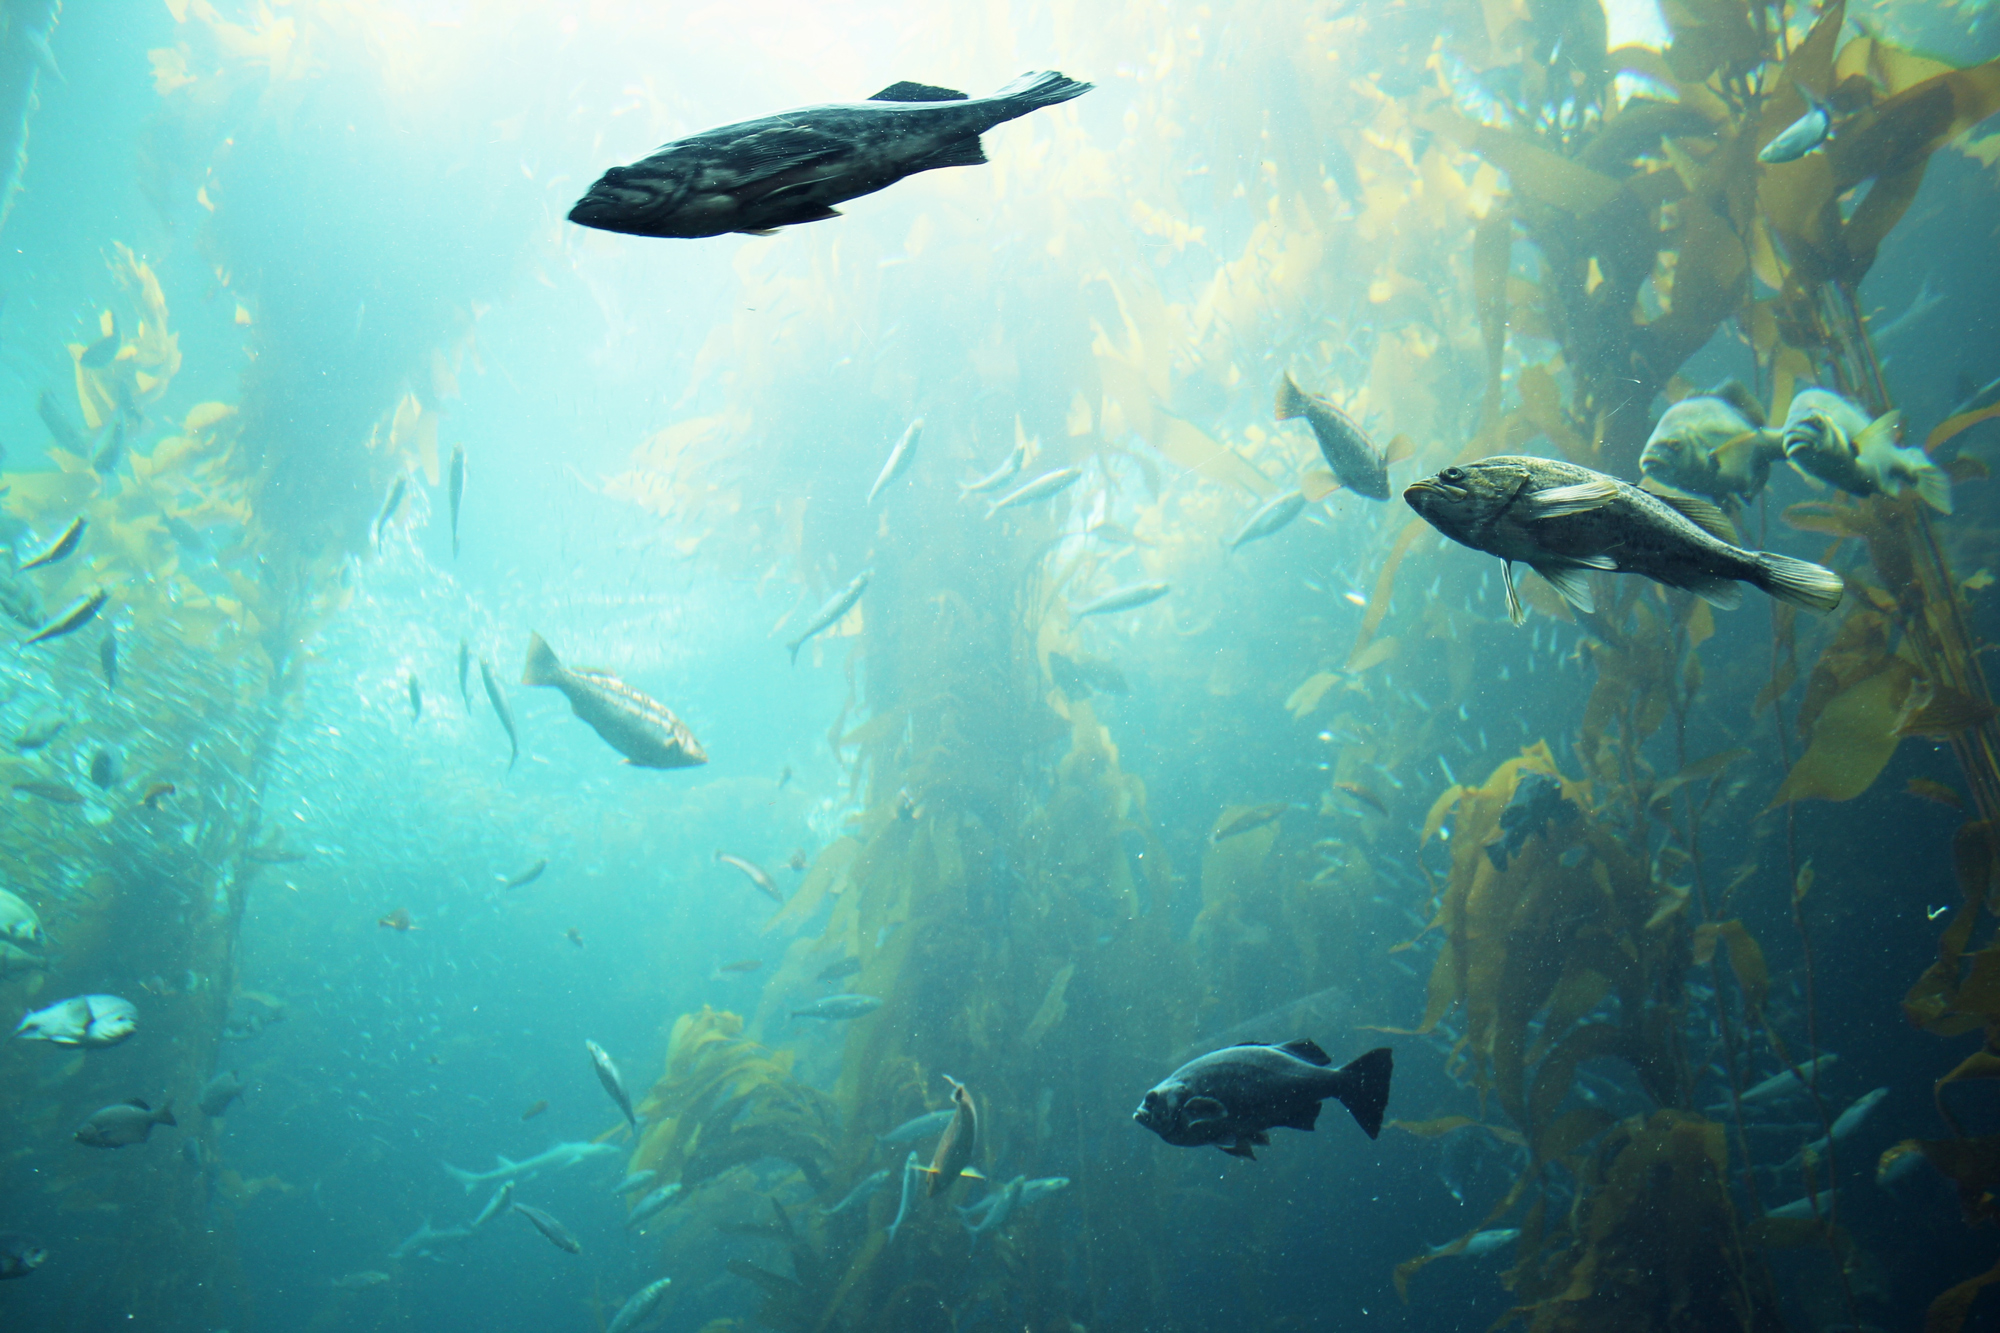 The Kelp Forest in Monterey Aquarium, California